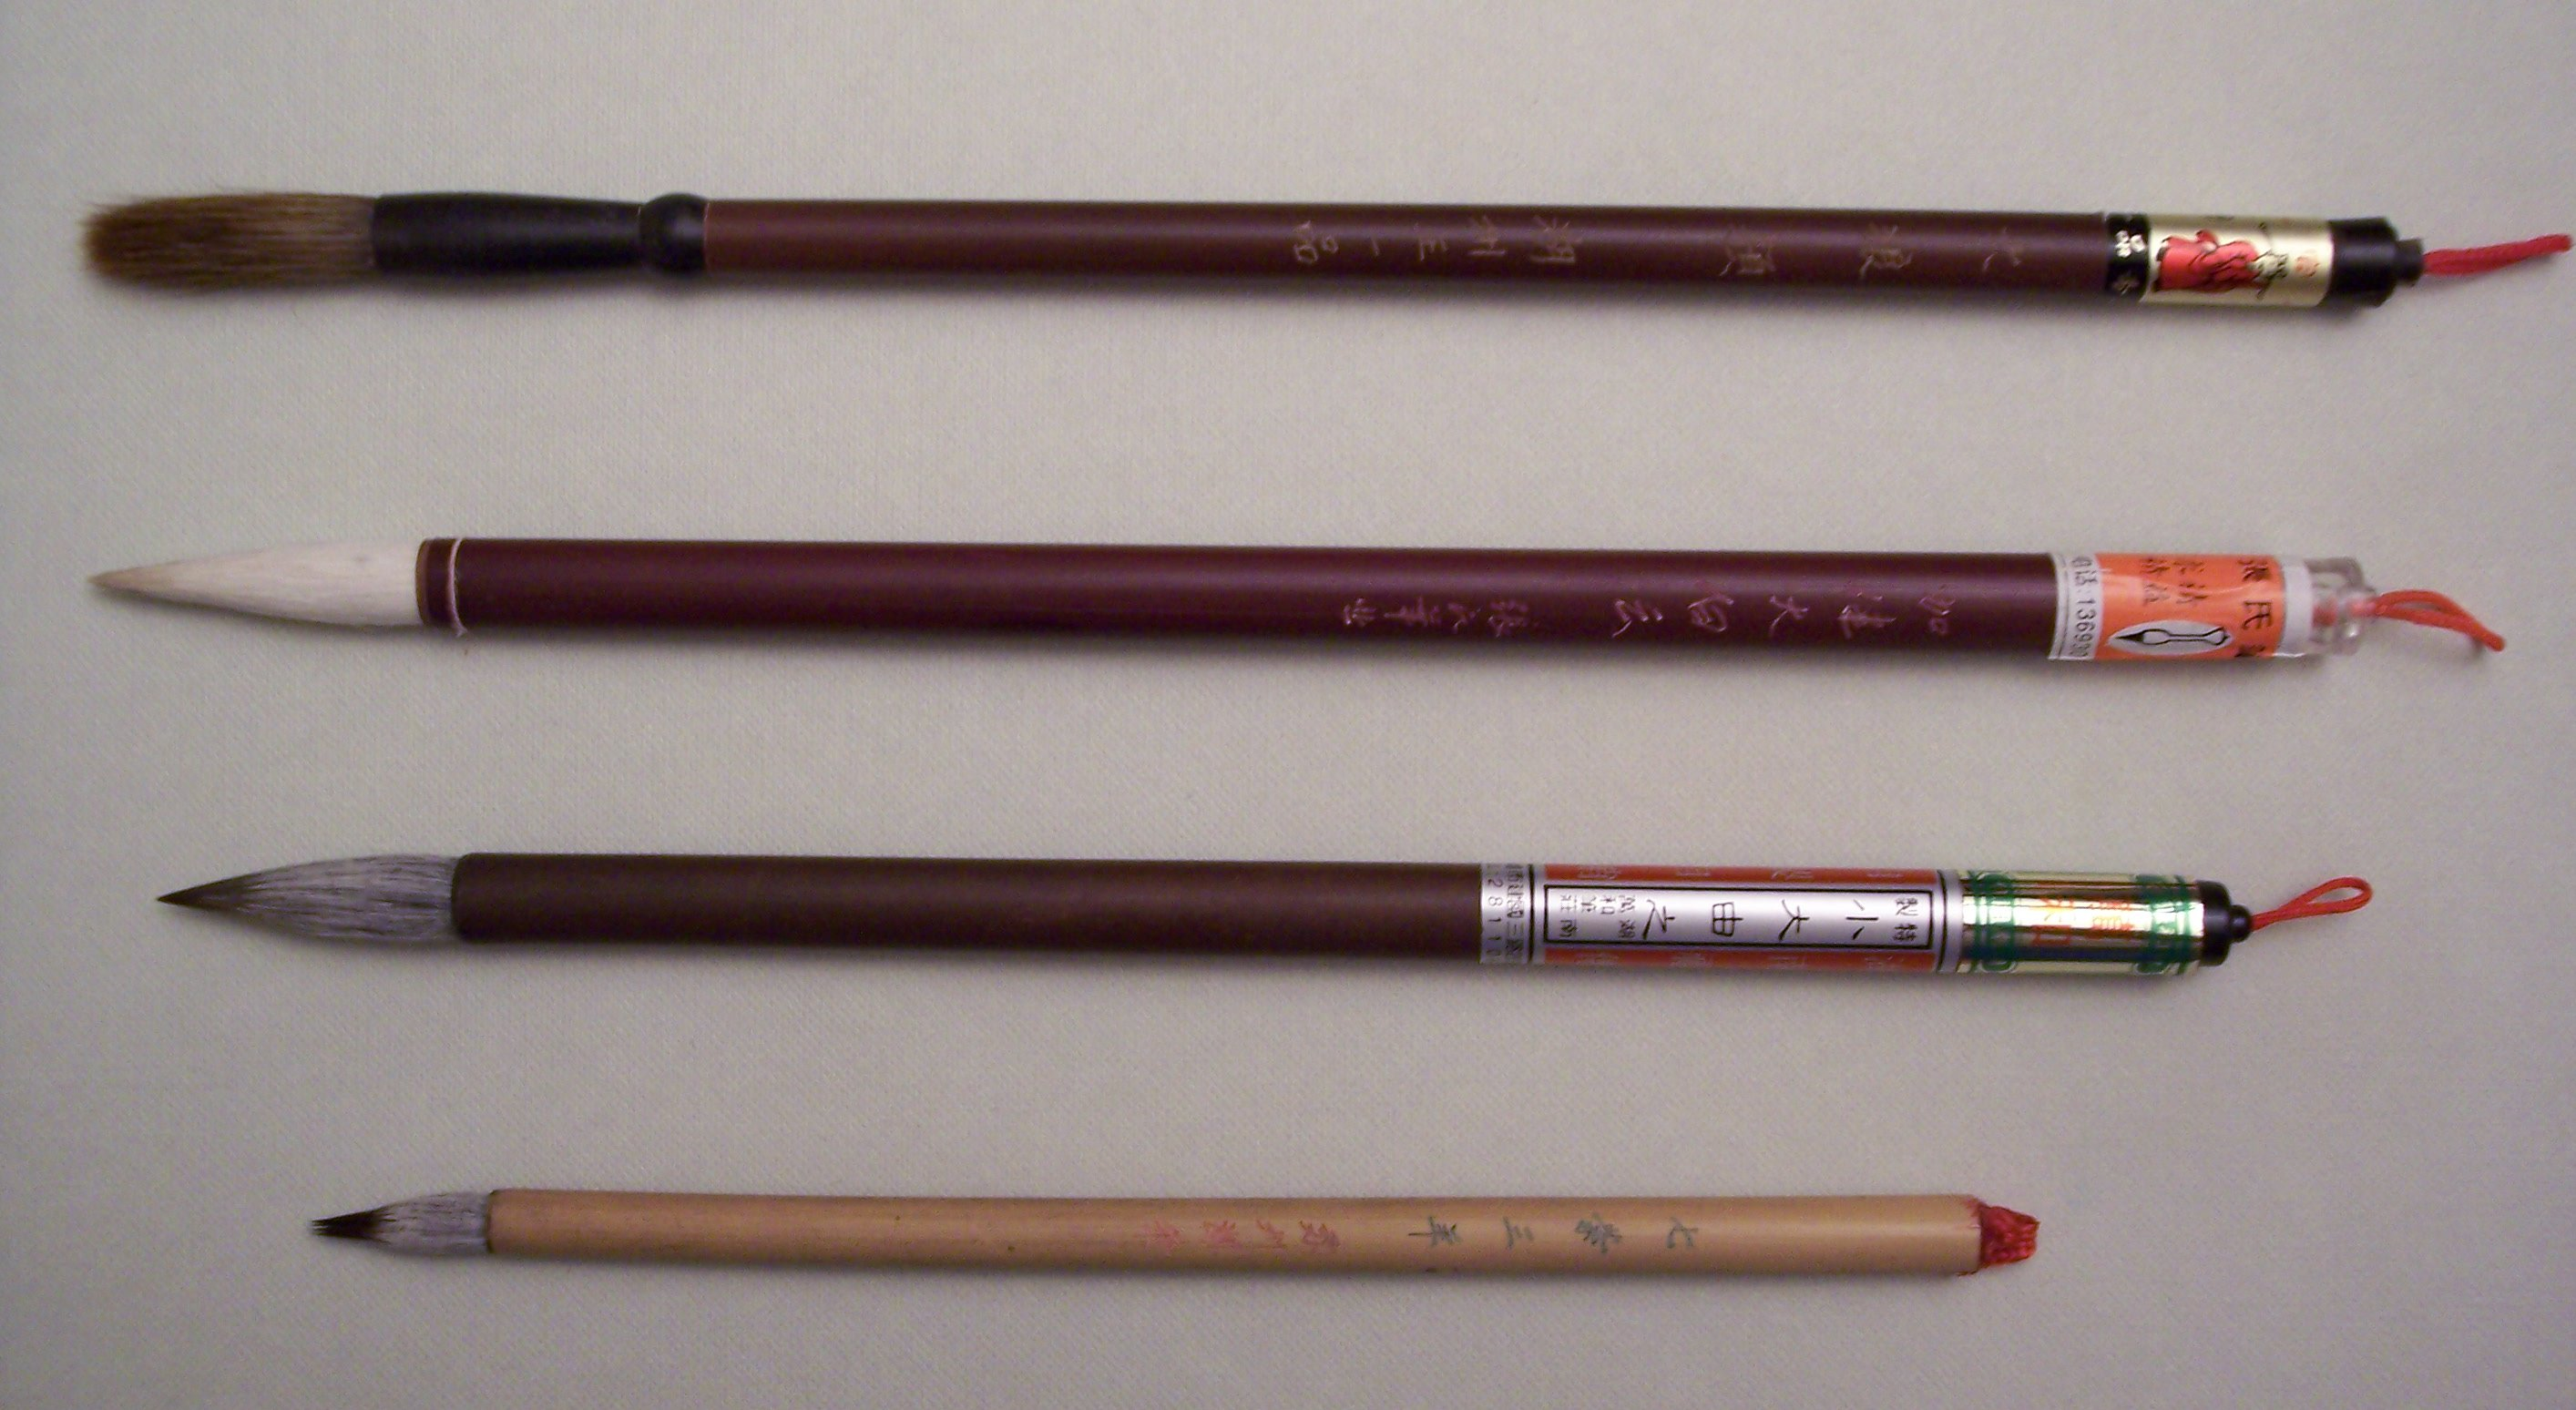 Principles of chinese calligraphy Chinese calligraphy brush